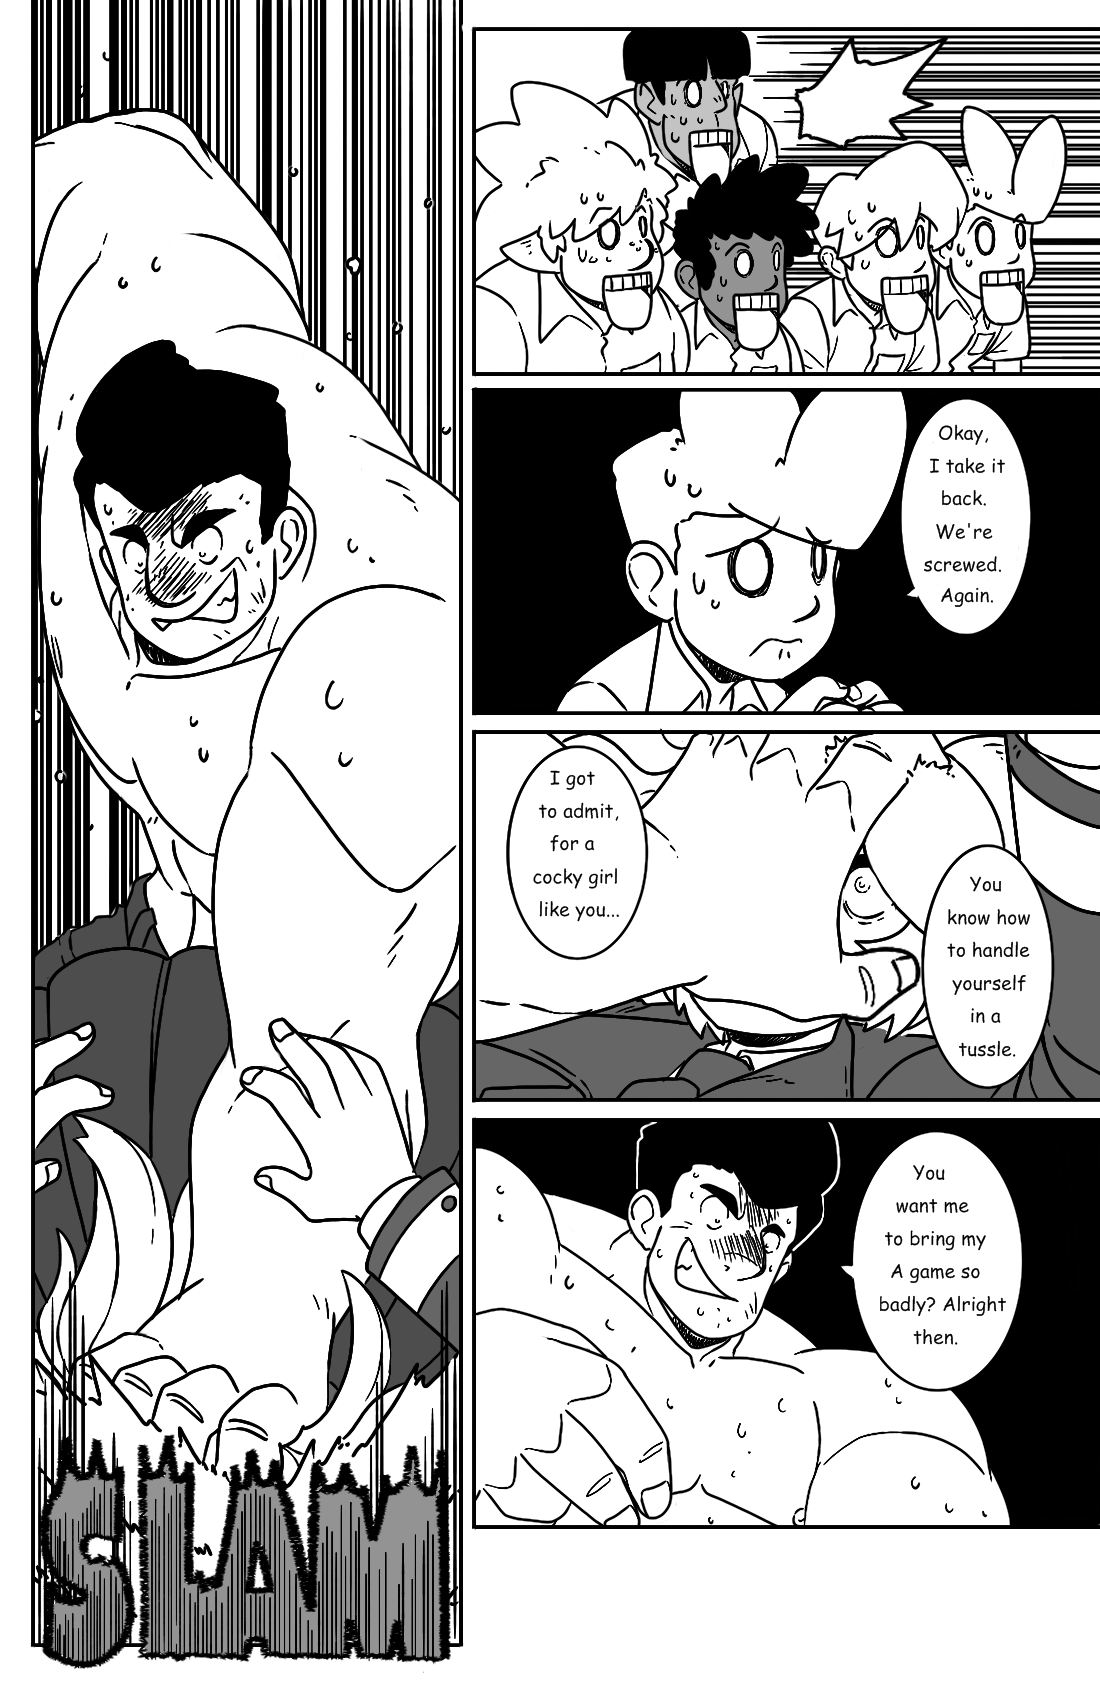 Bully Bully Part 2 pg.24